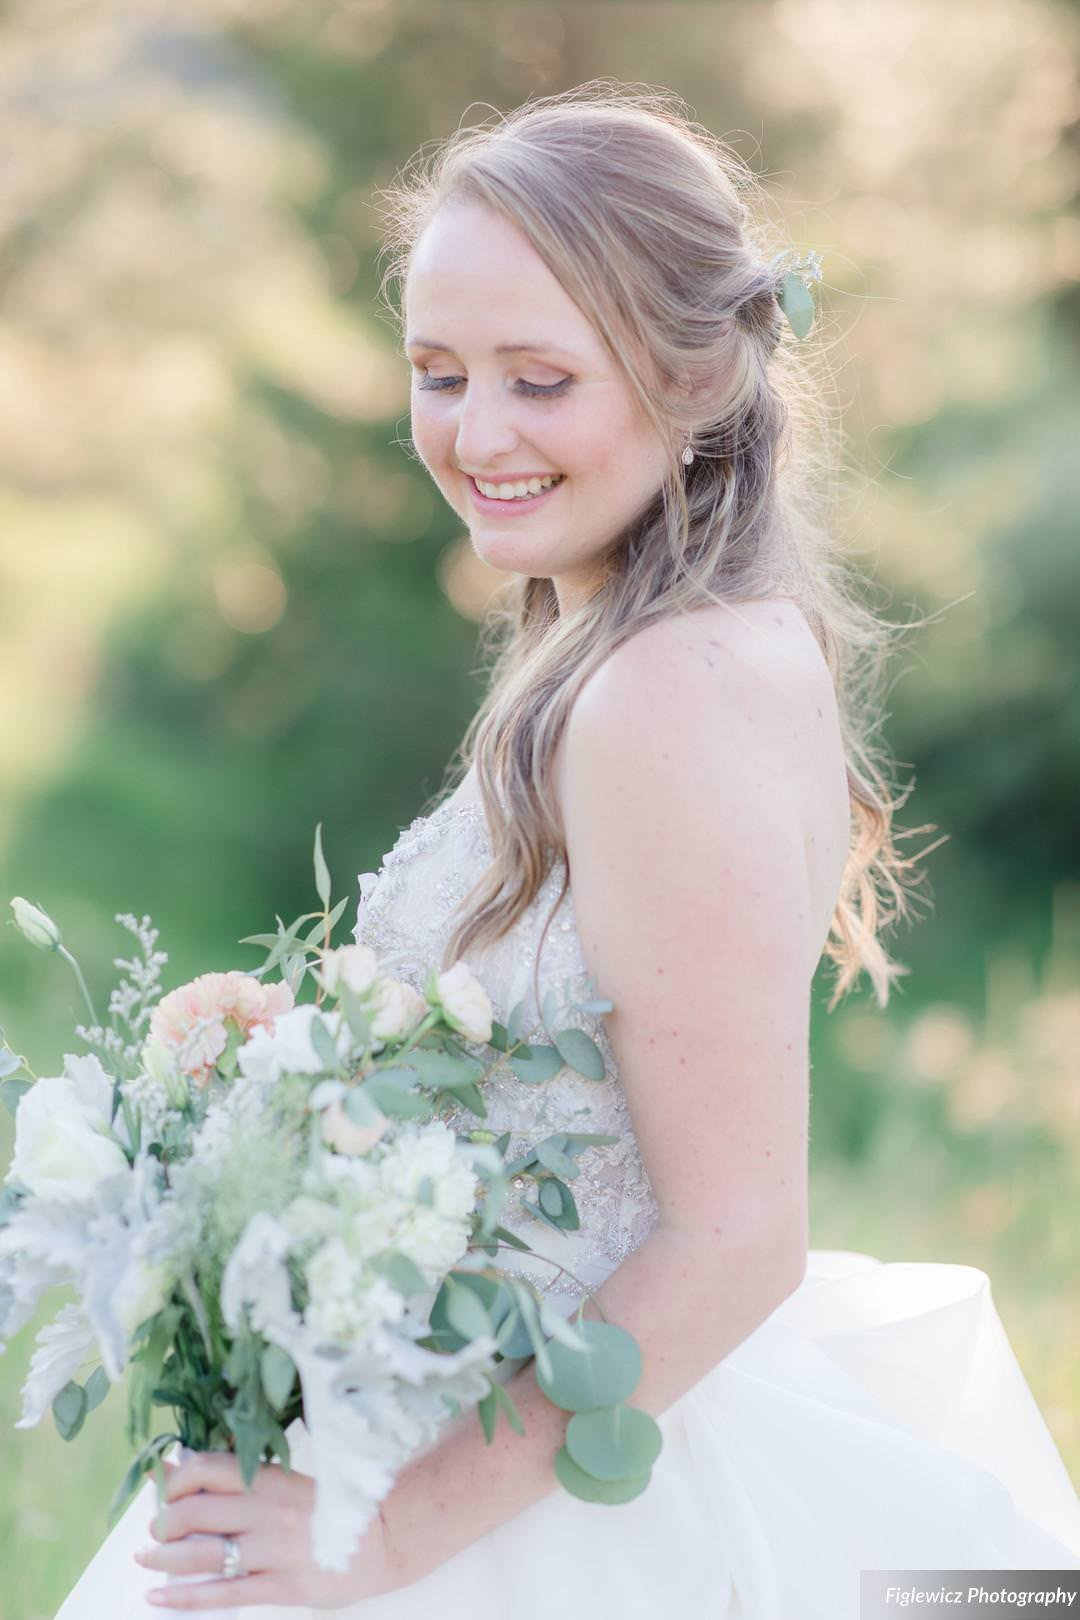 Garden_Tinsley_FiglewiczPhotography_LakeTahoeWeddingSquawValleyCreekTaylorBrendan00138_big